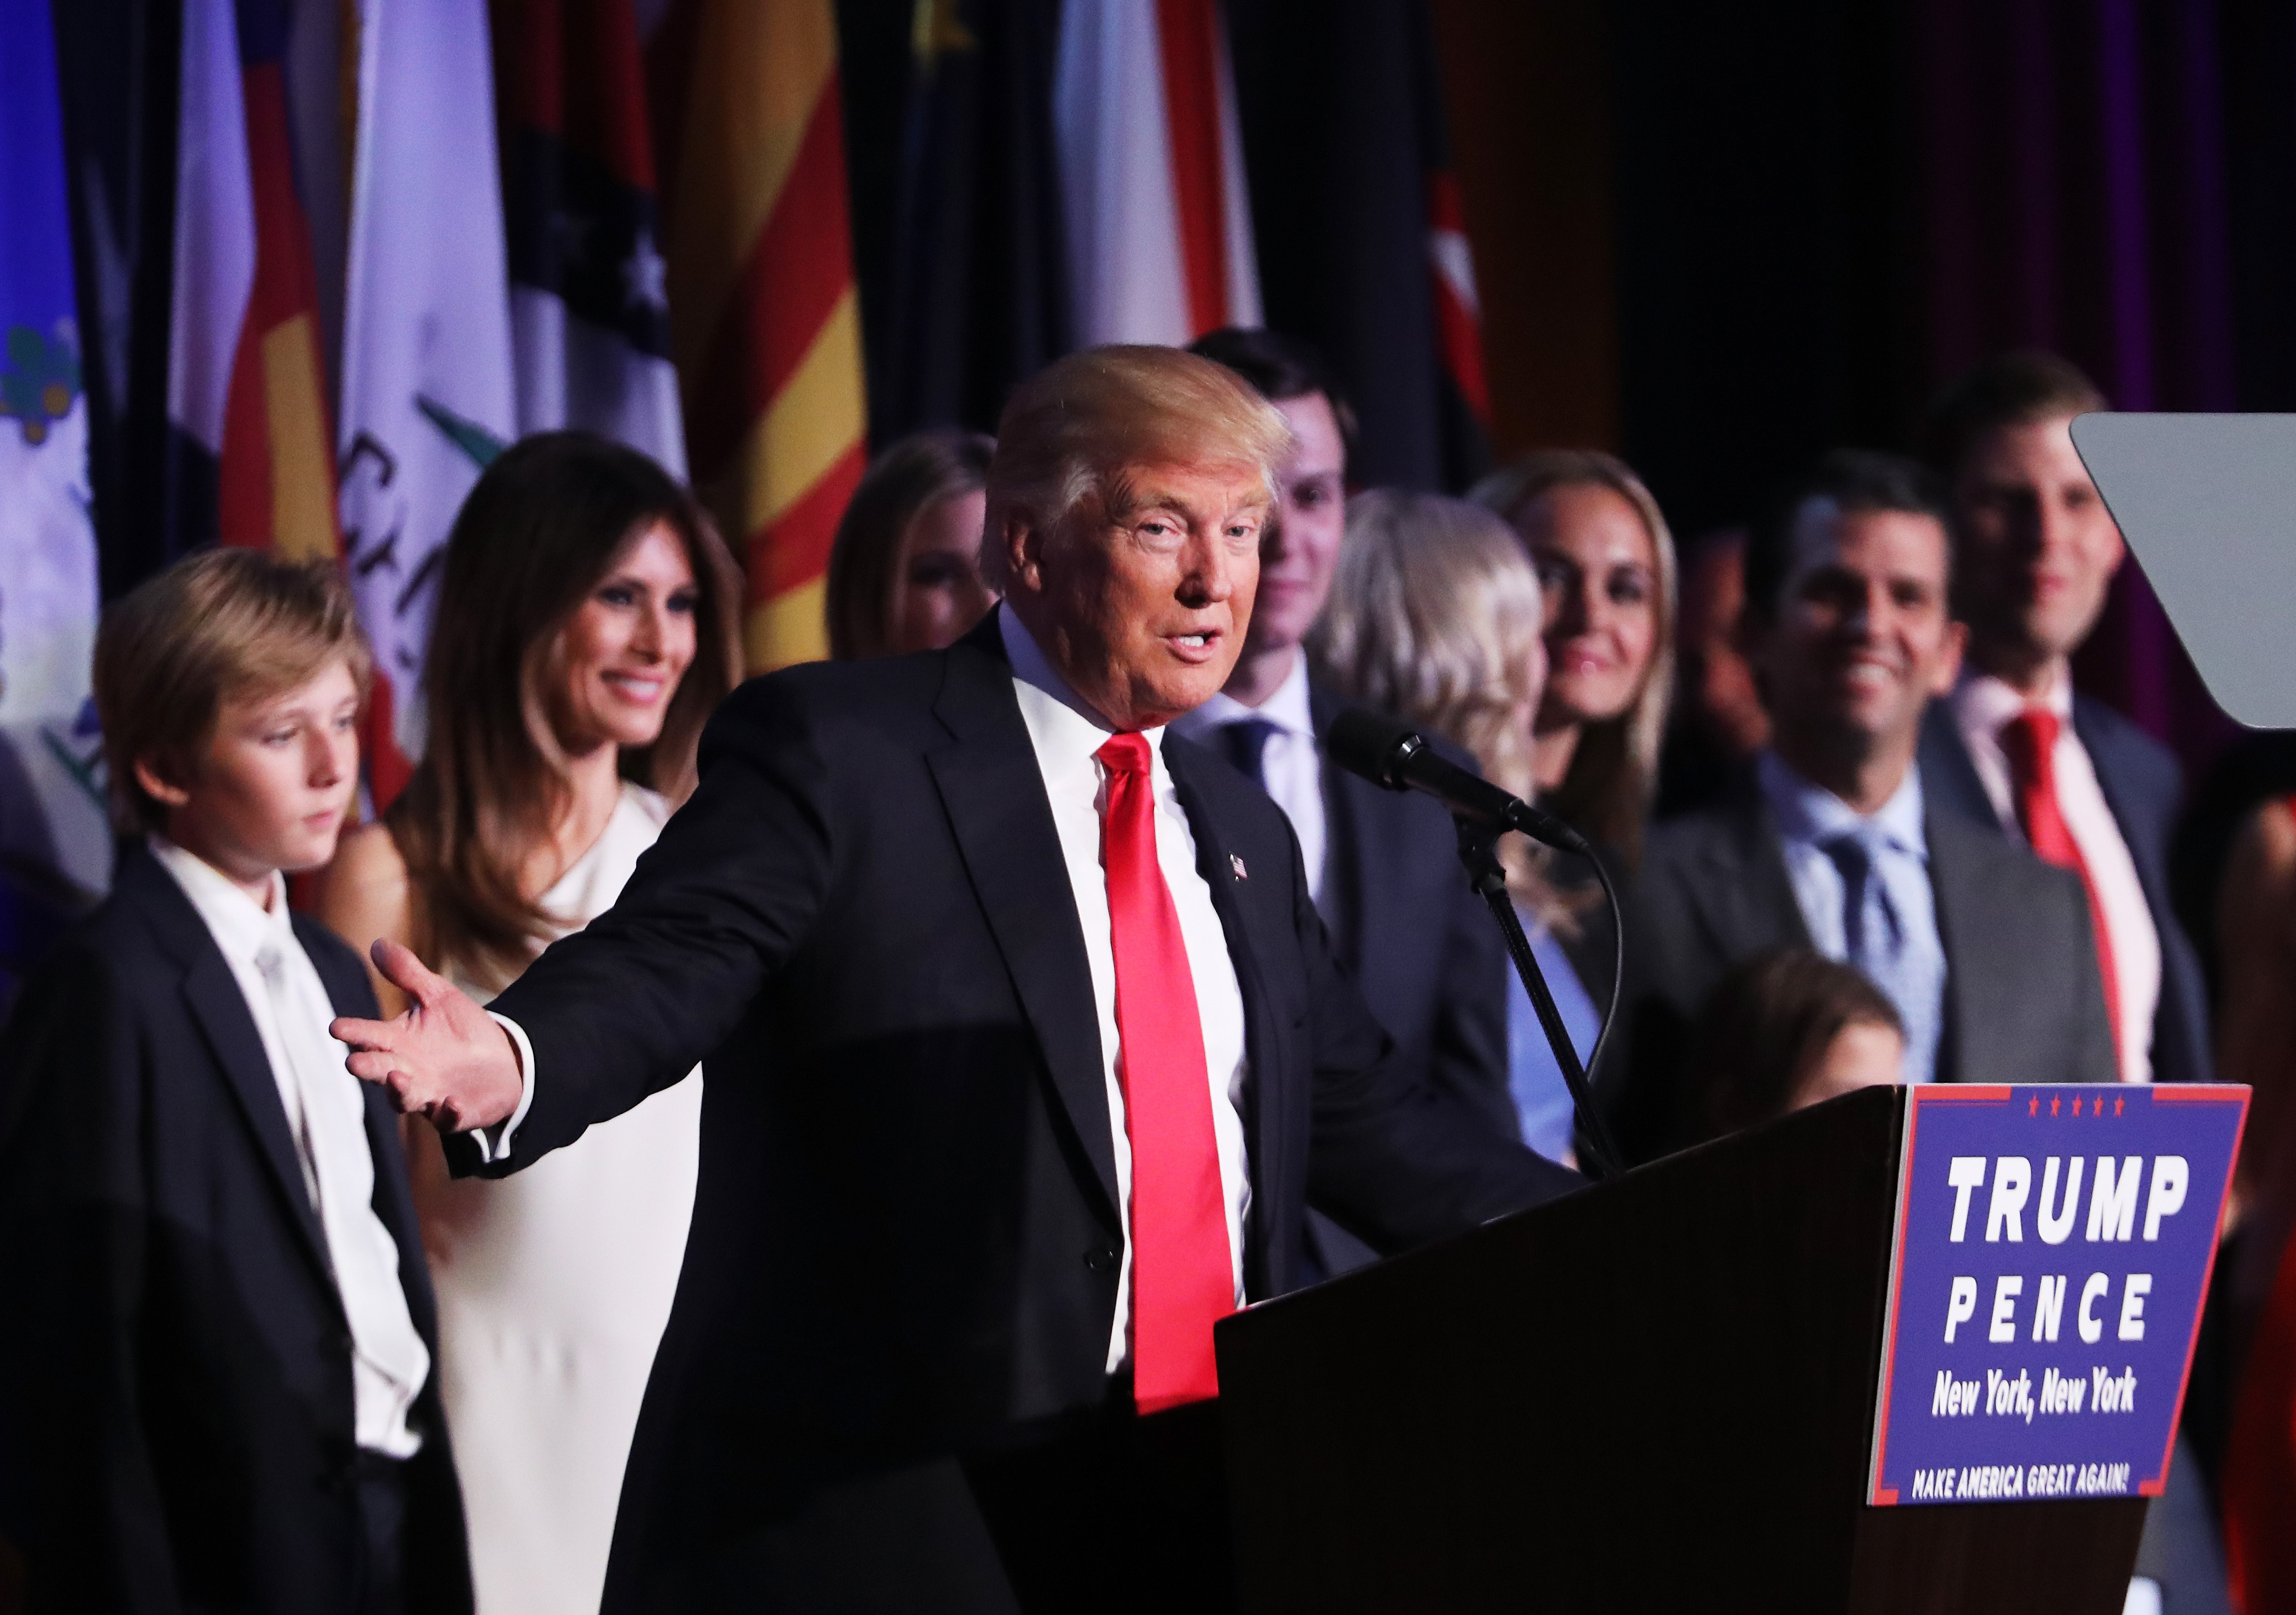 Republican president-elect Donald Trump delivers his acceptance speech during his election night event in the early morning hours of November 9, 2016 in New York City. Donald Trump defeated Democratic presidential nominee Hillary Clinton to become the 45th president of the United States.  (credit: Spencer Platt/Getty Images)